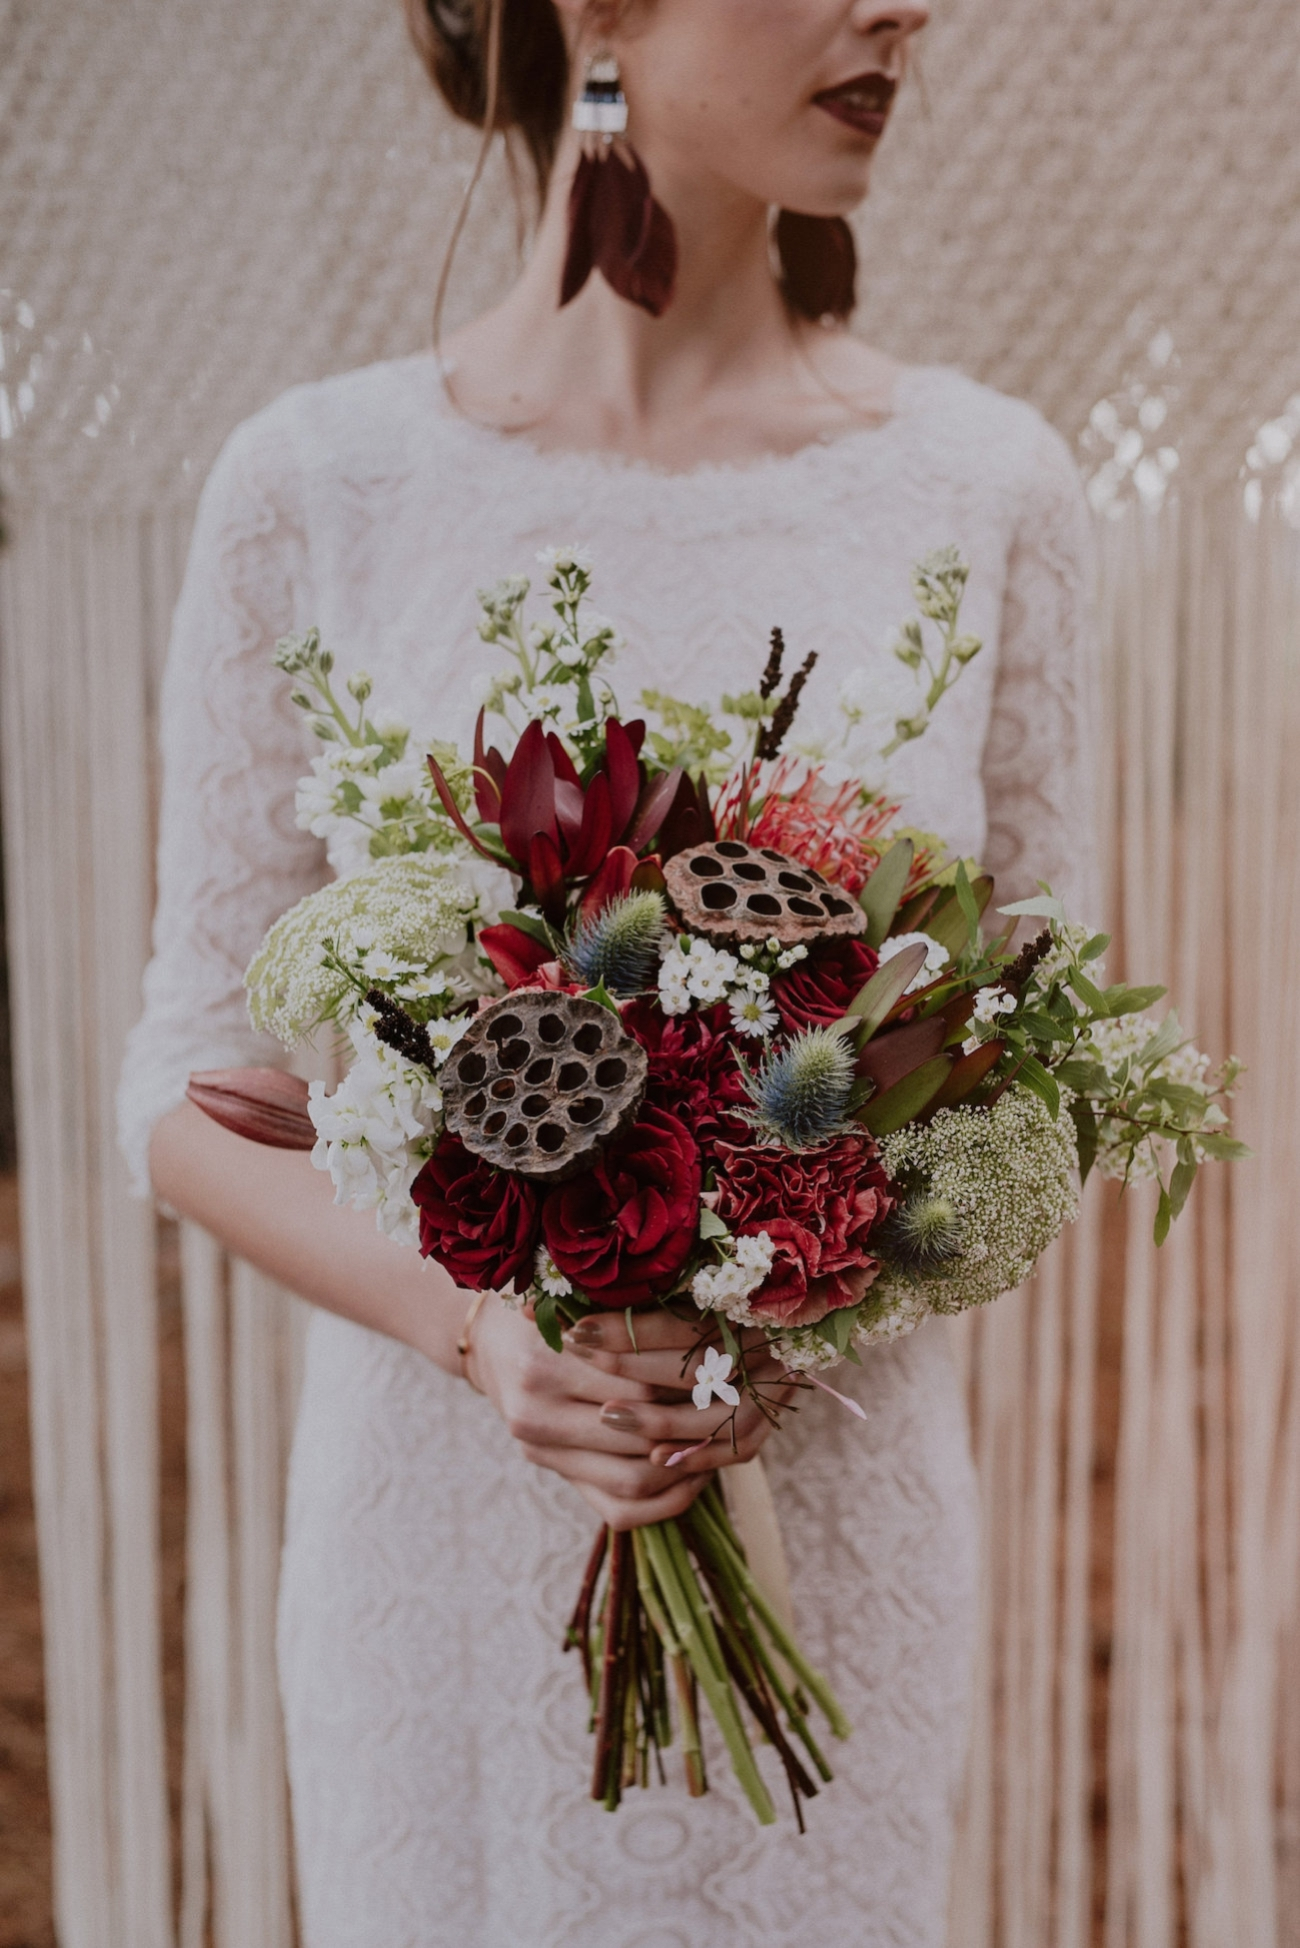 Rustic Wedding Bouquet | Credit: Lad & Lass Photography